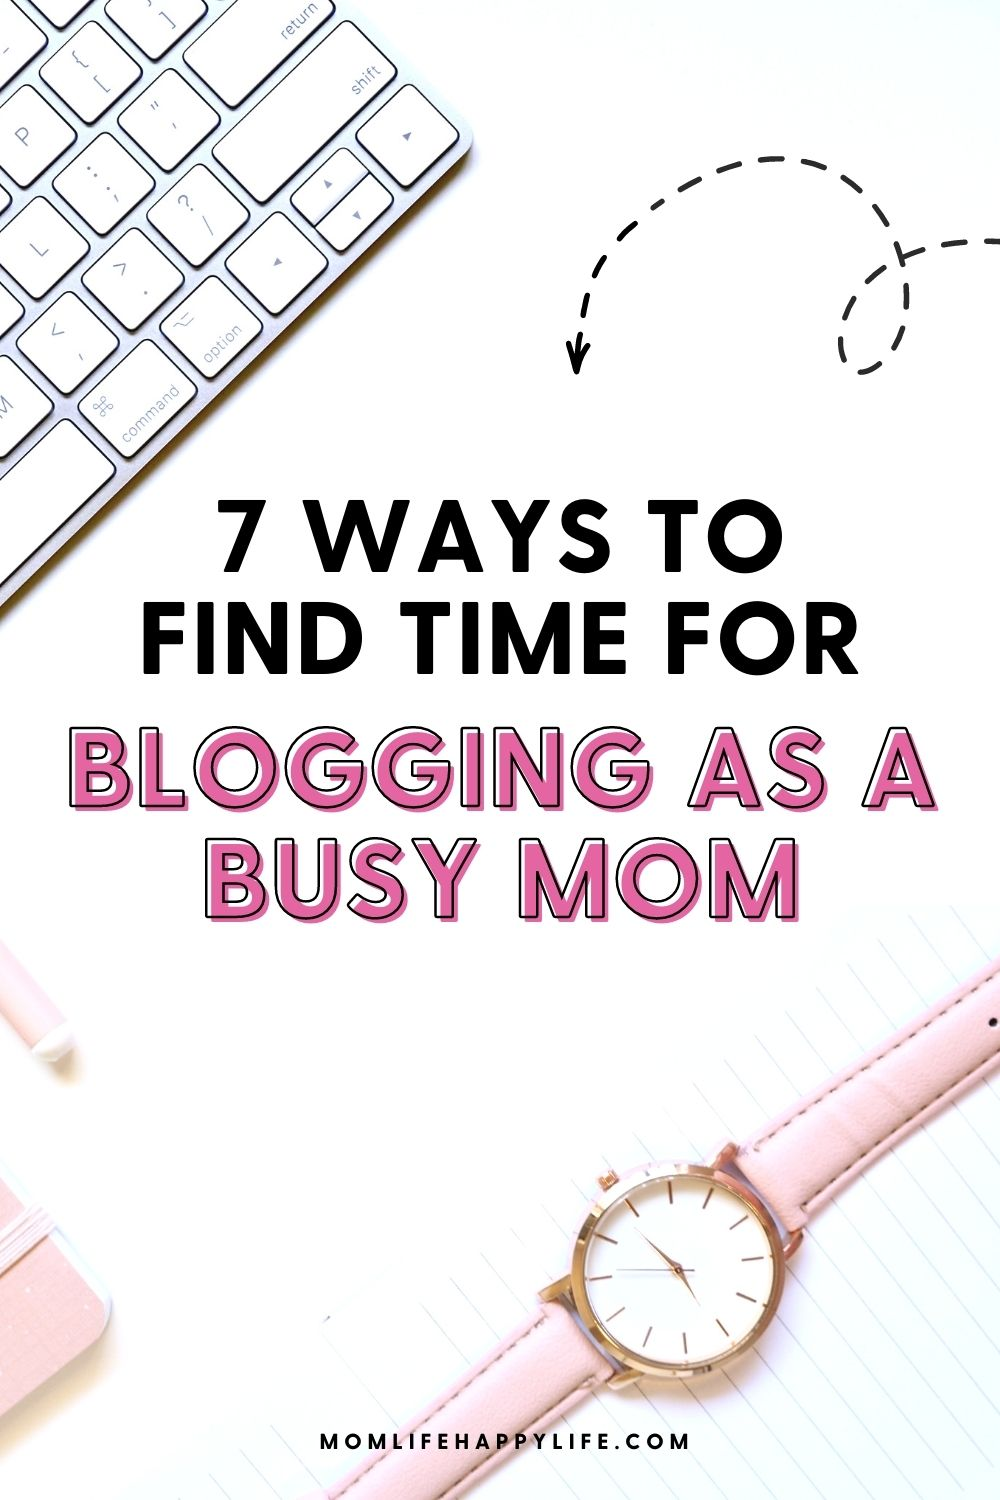 7 Ways to Find Time for Blogging as a Busy Mom